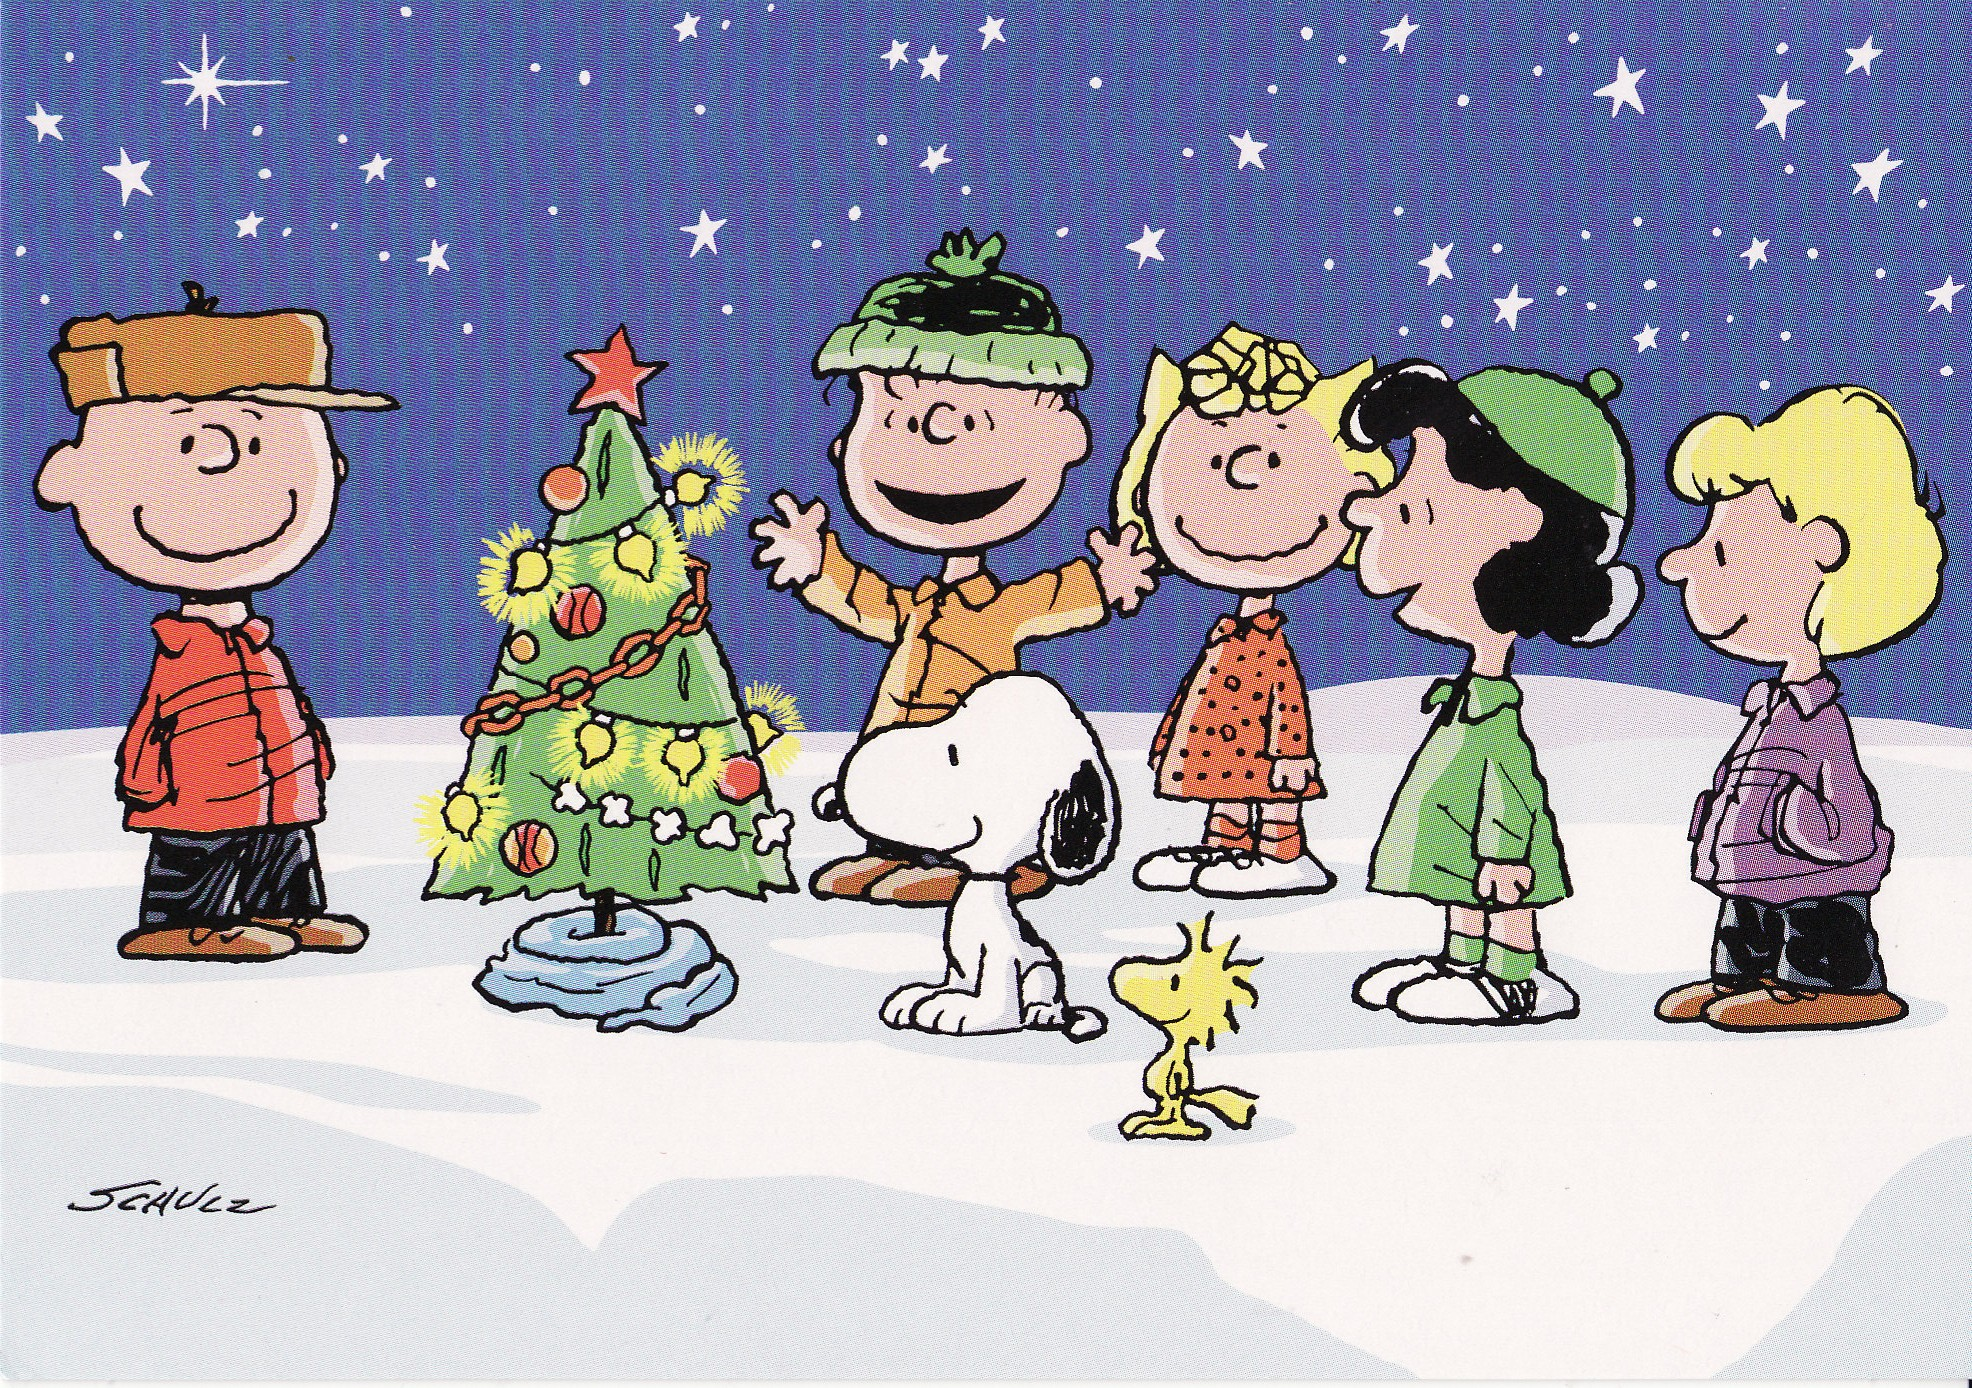 CHARLIE BROWN peanuts comics christmas g wallpaper background 1972x1388